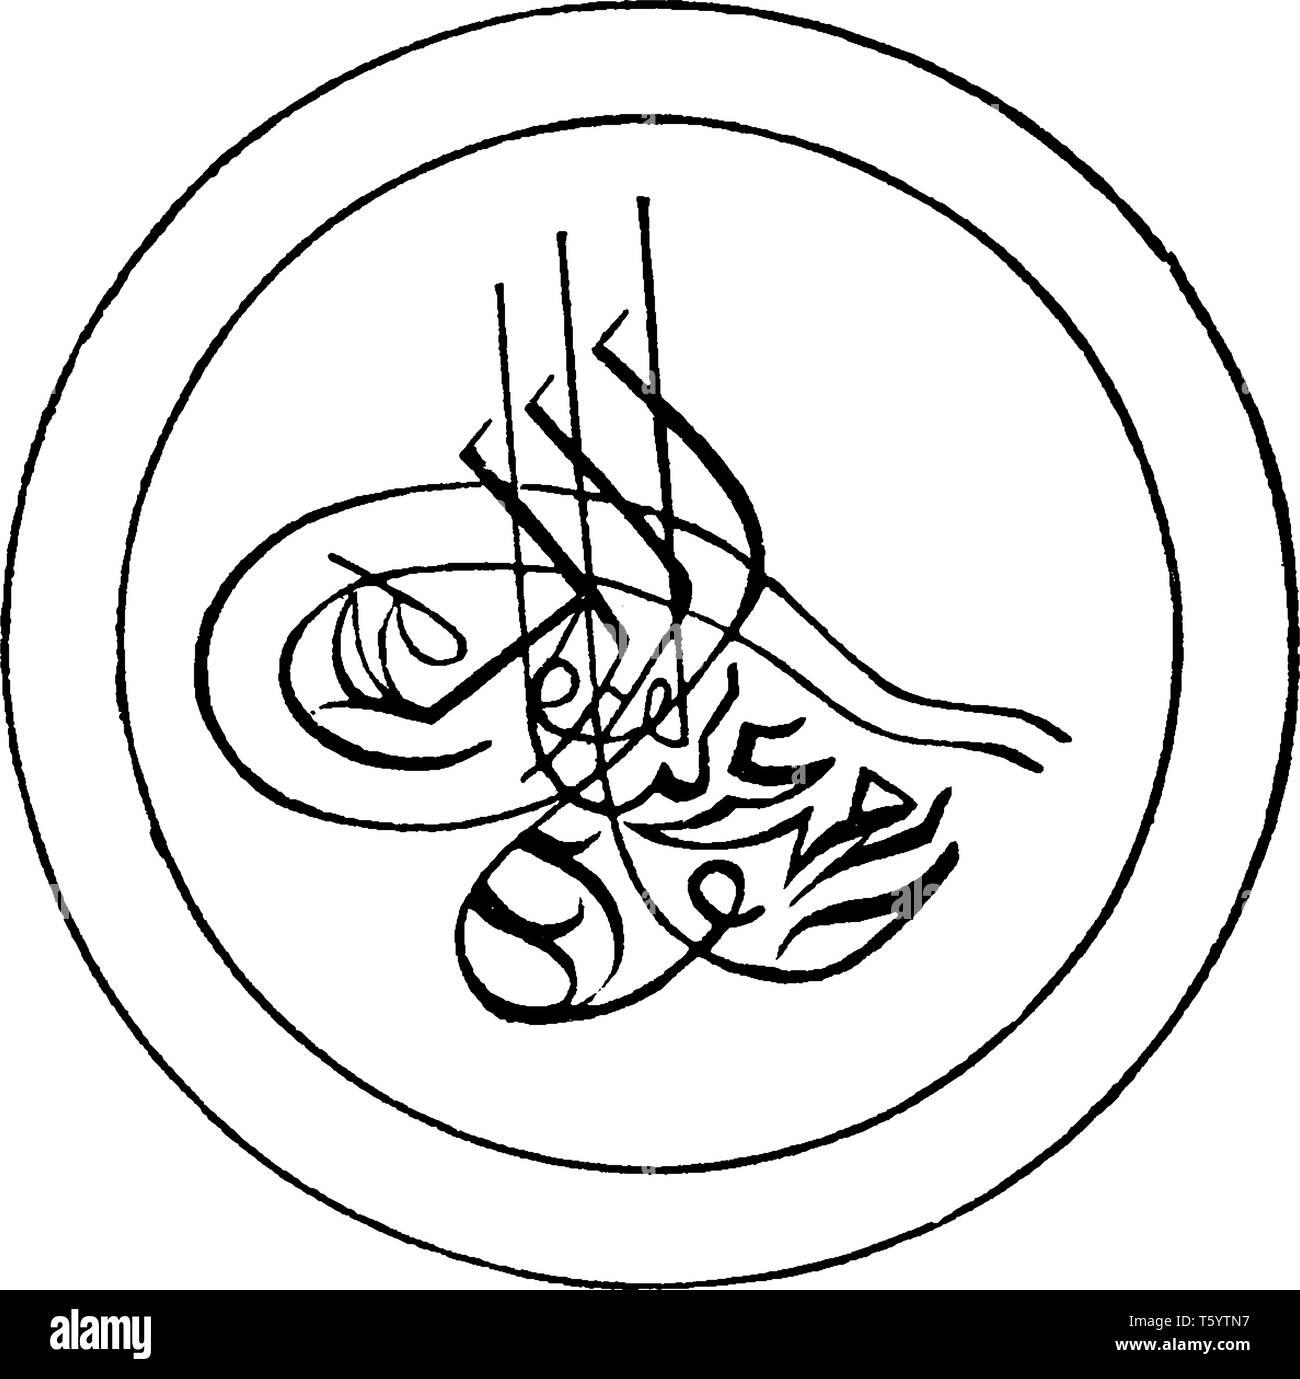 The Great Seal of Turkey which is Coat of Arms, vintage line drawing or engraving illustration. Stock Vector